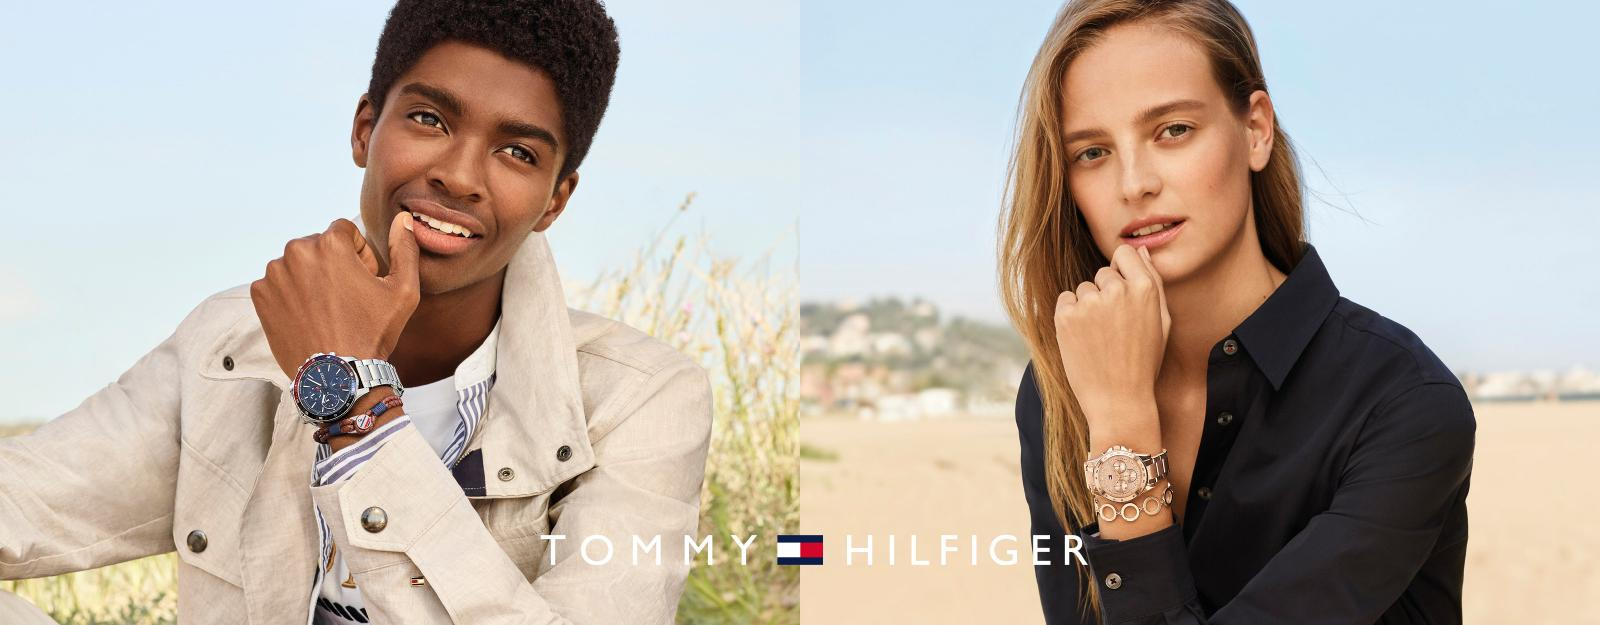 <h1>Tommy Hilfiger watches</h1>